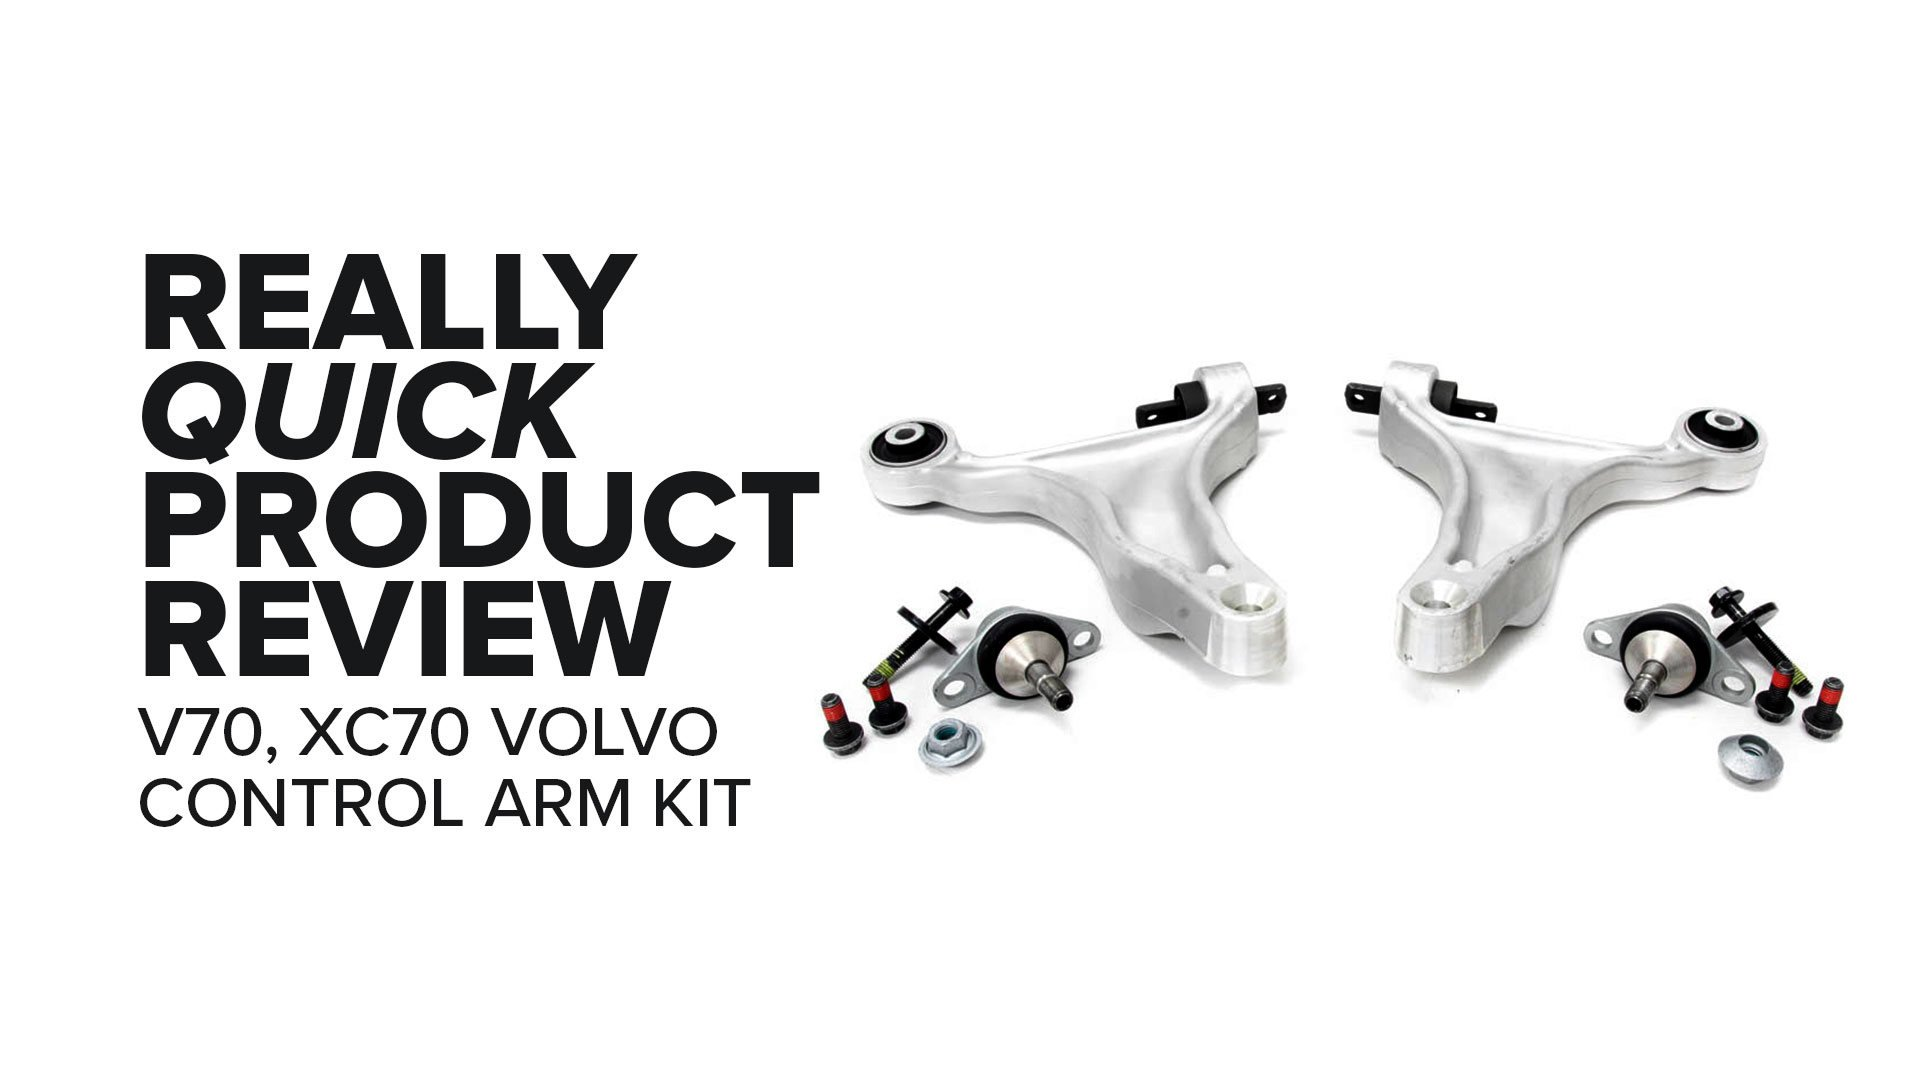 Volvo XC70 & V70 4-Piece Control Arm Kit - Symptoms, Highlights, And Product Review